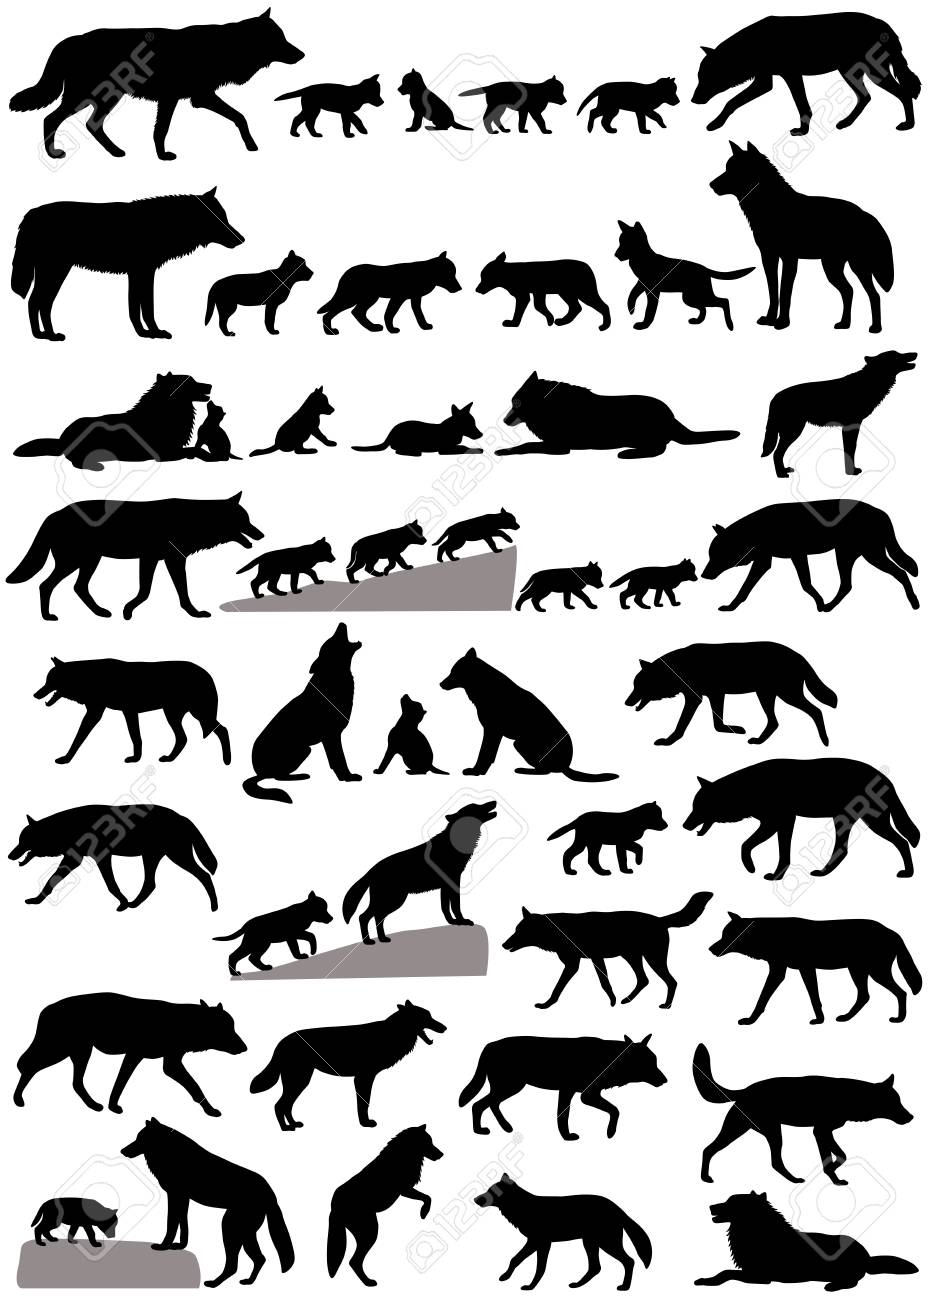 Collection of silhouettes of wolves and wolf-cubs - 102689800